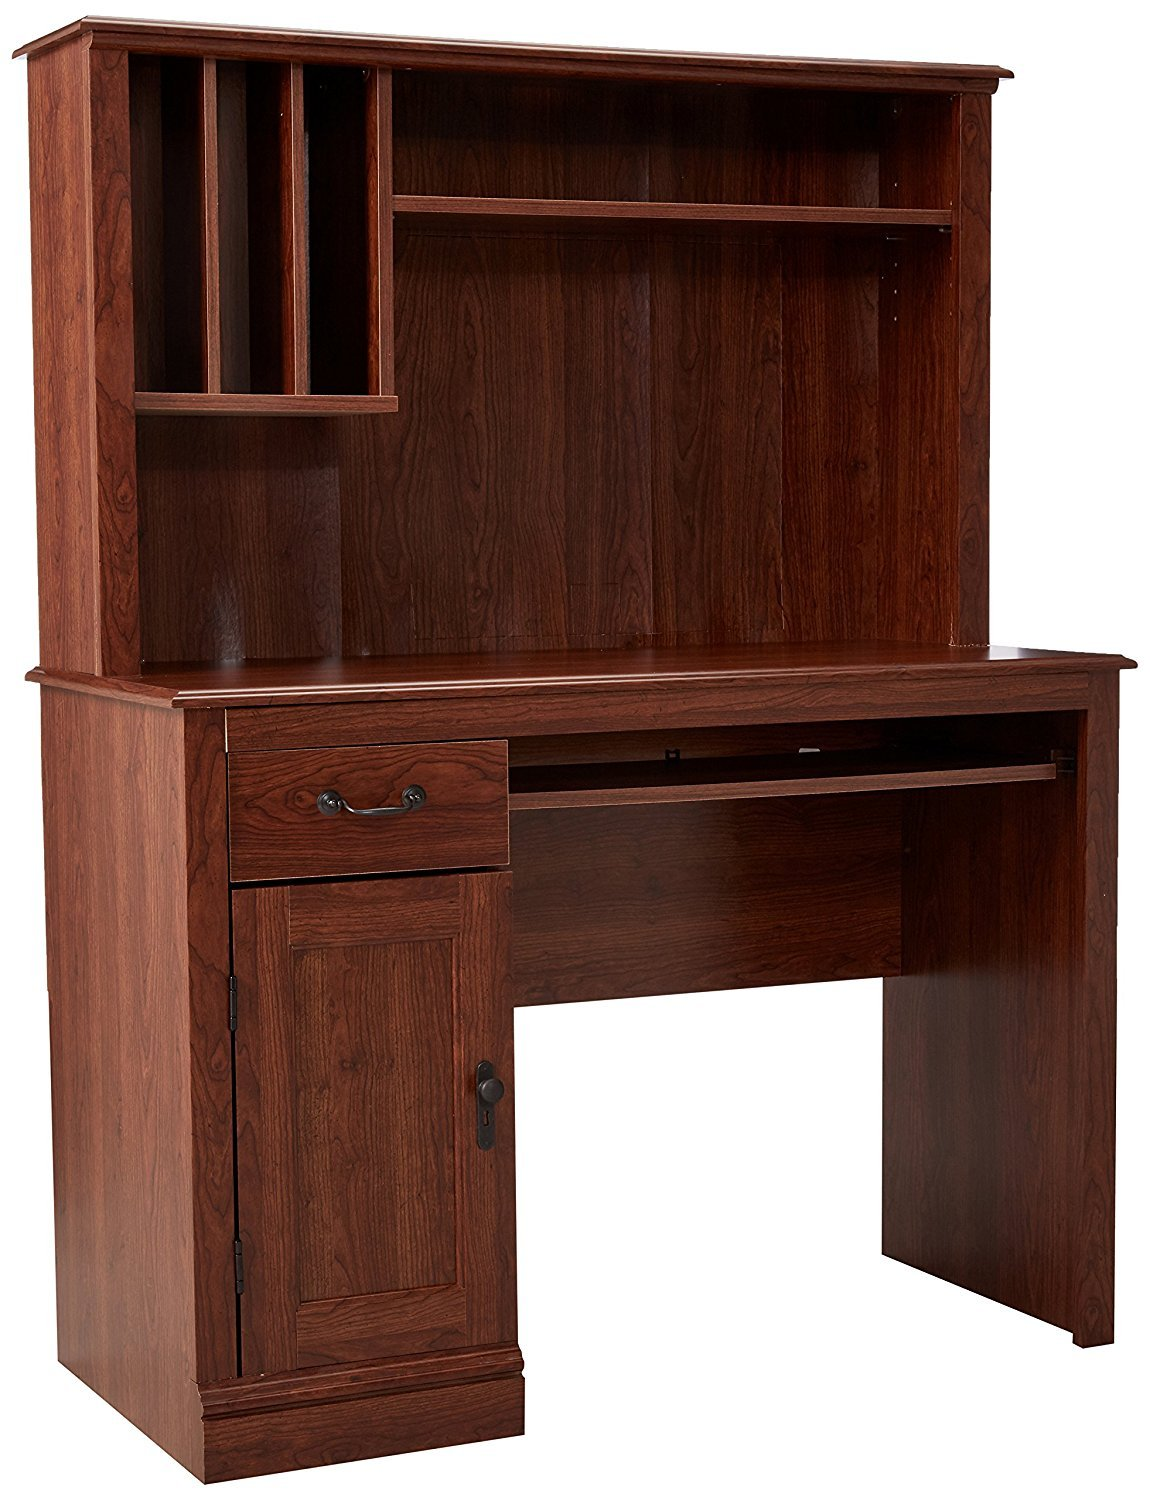 Computer Desk With Drawers Computer Desk With Hutch And Drawers Home Furniture Design